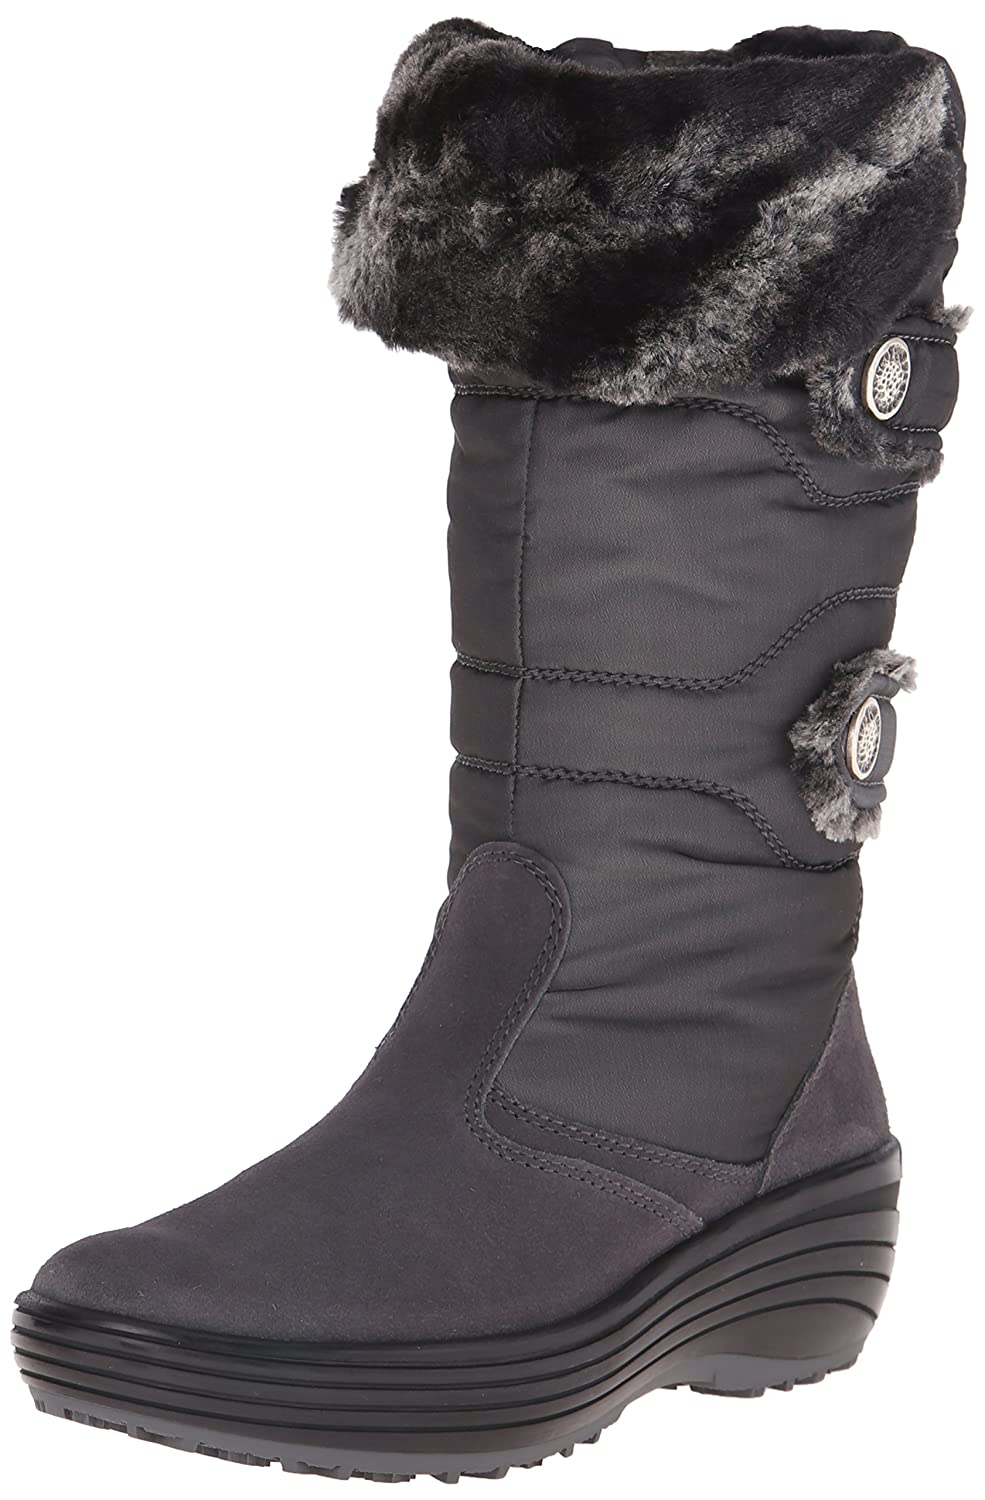 Pajar Women's Chloe Boot B0114SMBP8 39 EU/8-8.5 M US|Charcoal